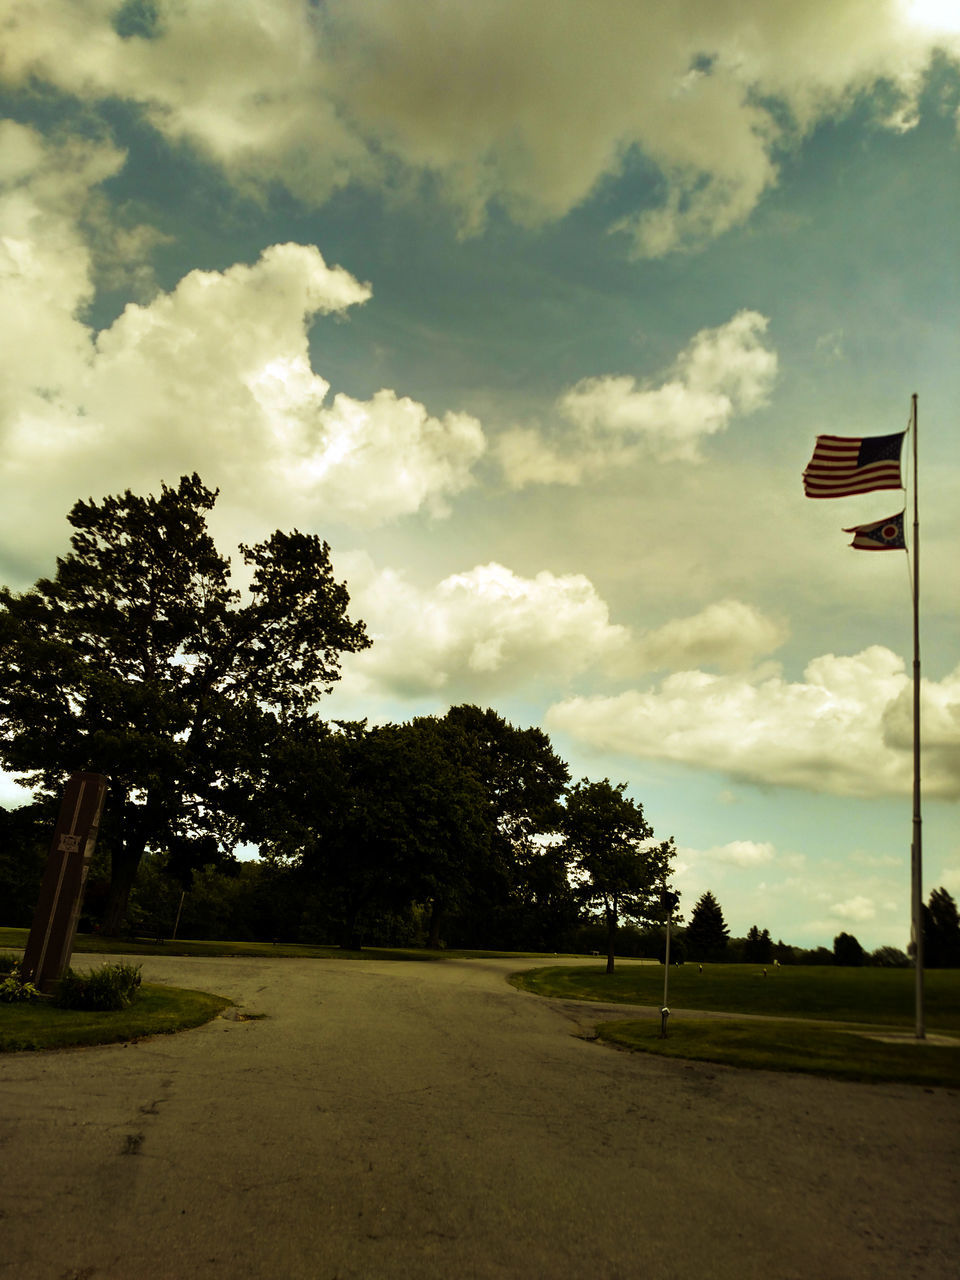 tree, flag, sky, cloud - sky, no people, nature, tranquility, scenics, outdoors, tranquil scene, beauty in nature, landscape, day, patriotism, grass